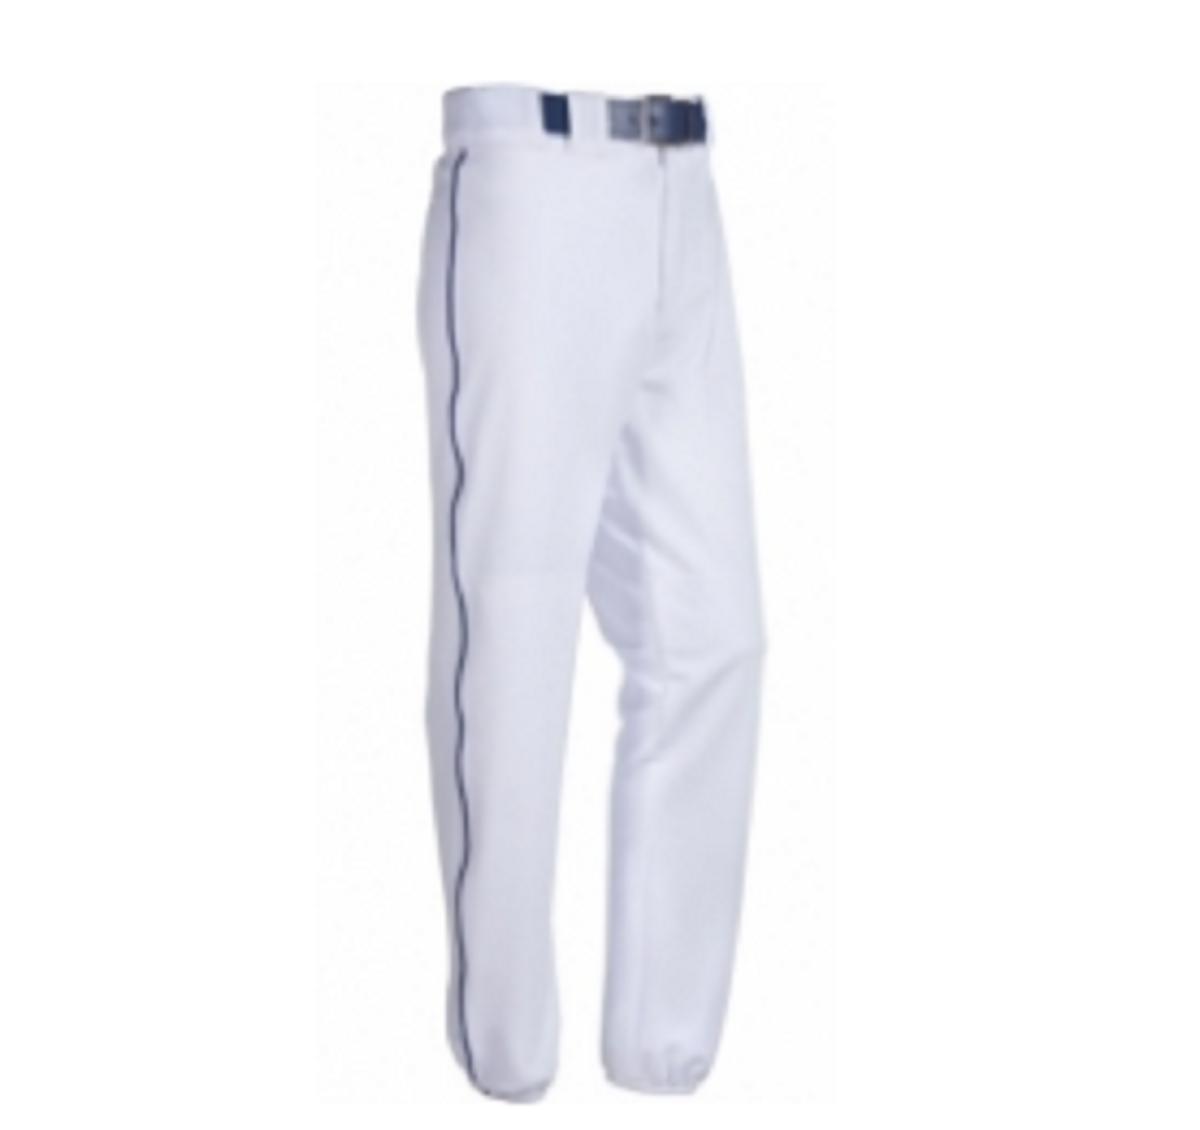 Baseball Uniform Trousers Model No TSI­5507